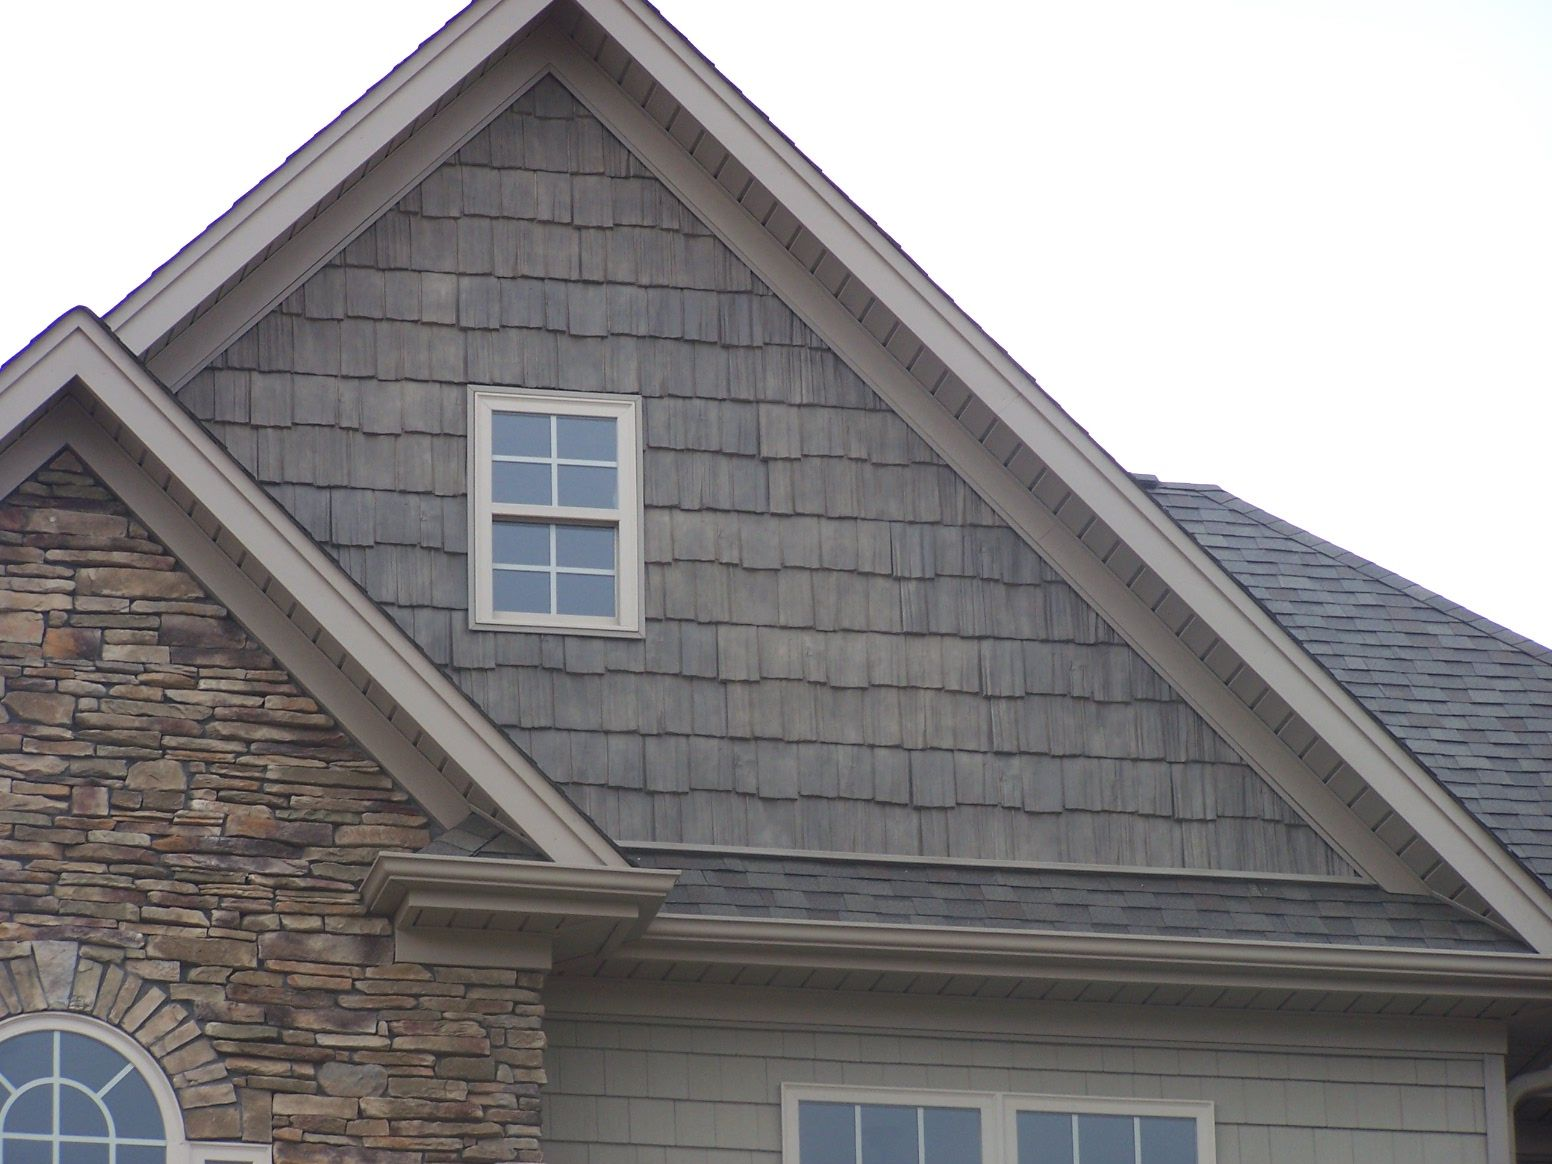 Brick And Stone Exterior Combinations Brick And Stone Combinations Other Possible Color Brick